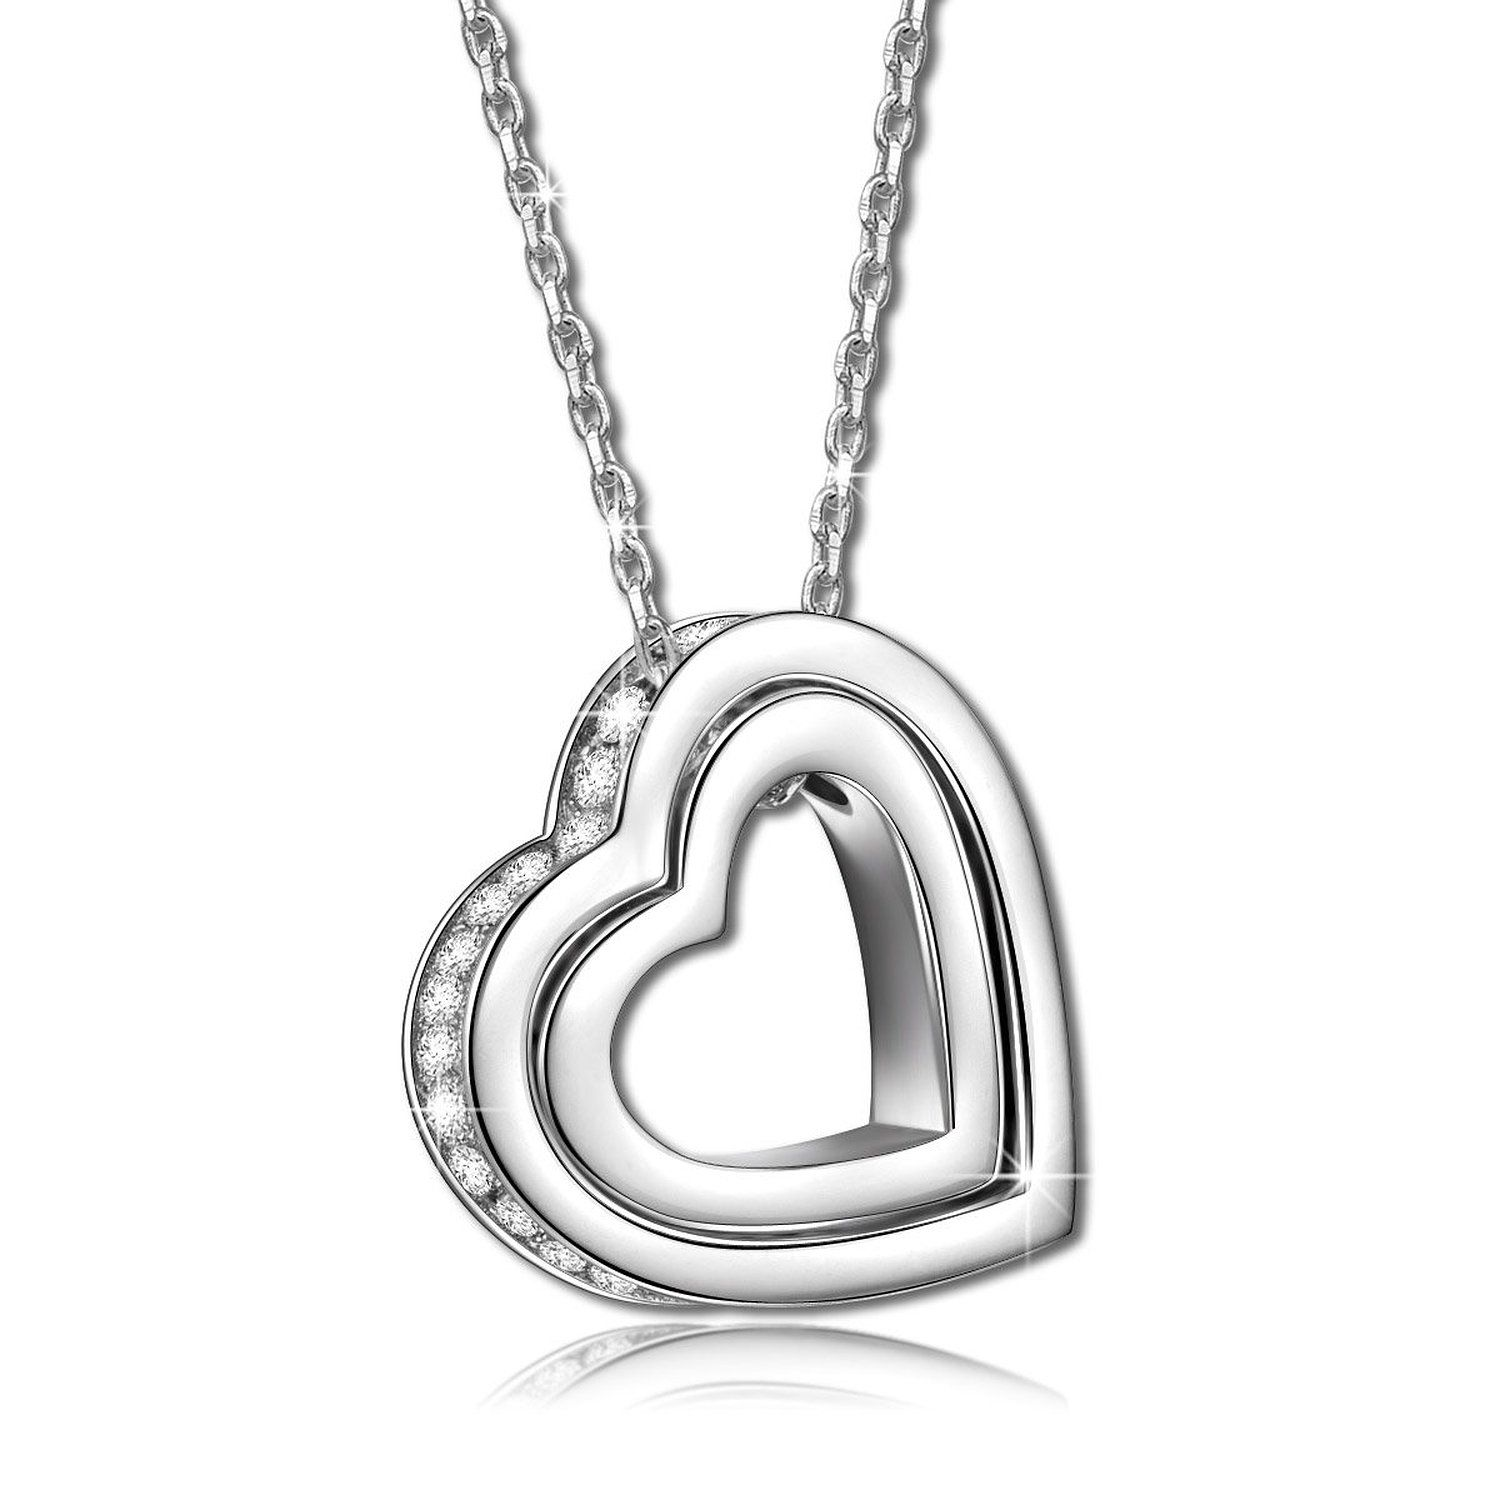 PAULINE & MORGEN LOVE YOU FOREVER 925 Sterling Silver Necklace for Women pY7h5cS